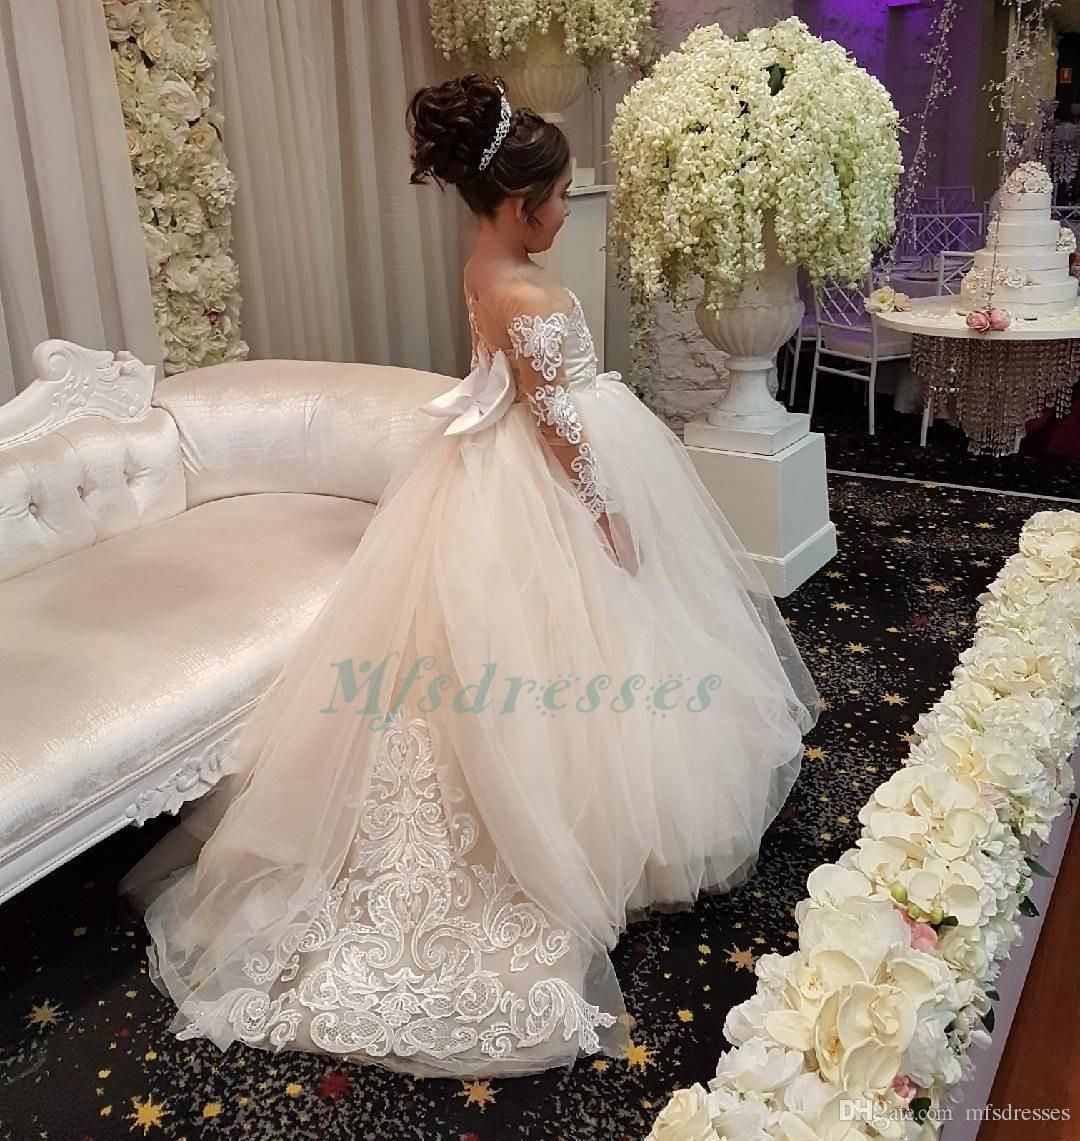 Gown For Flower Girl Wedding: Princess White Pink Flower Girls Dresses For Weddings 2018